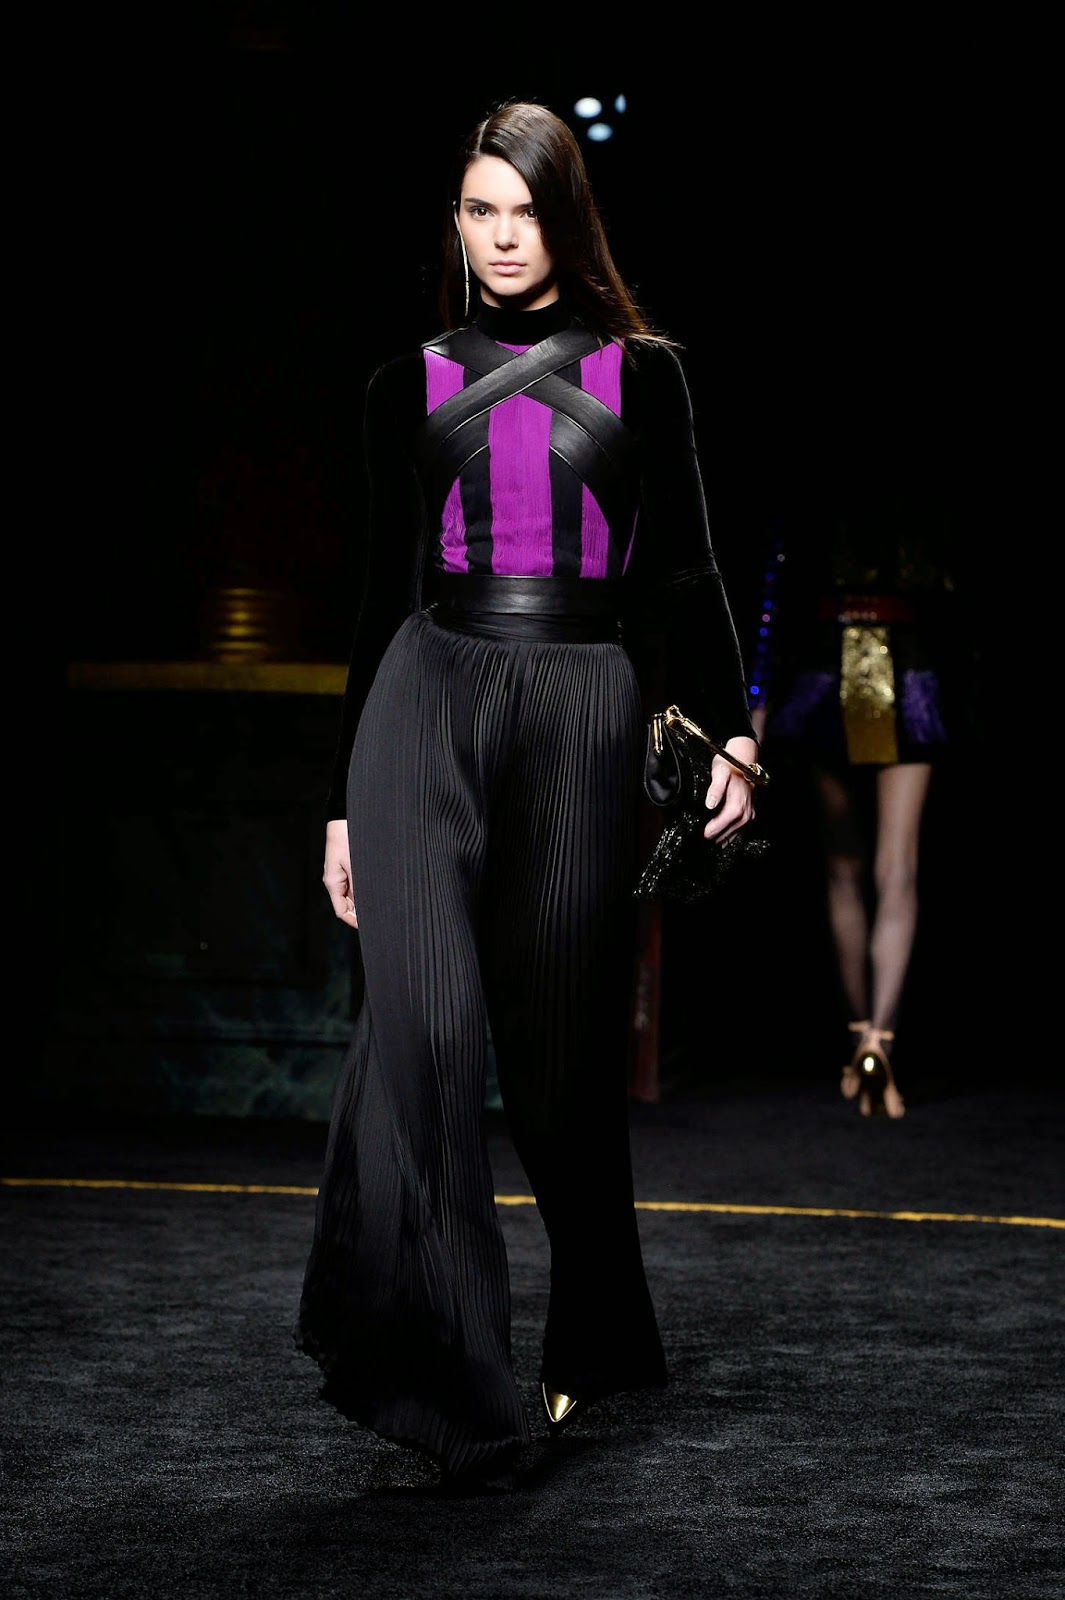 Kendall Jenner is stunning on the Balmain Fall/Winter 2015 Paris Fashion Week Runway